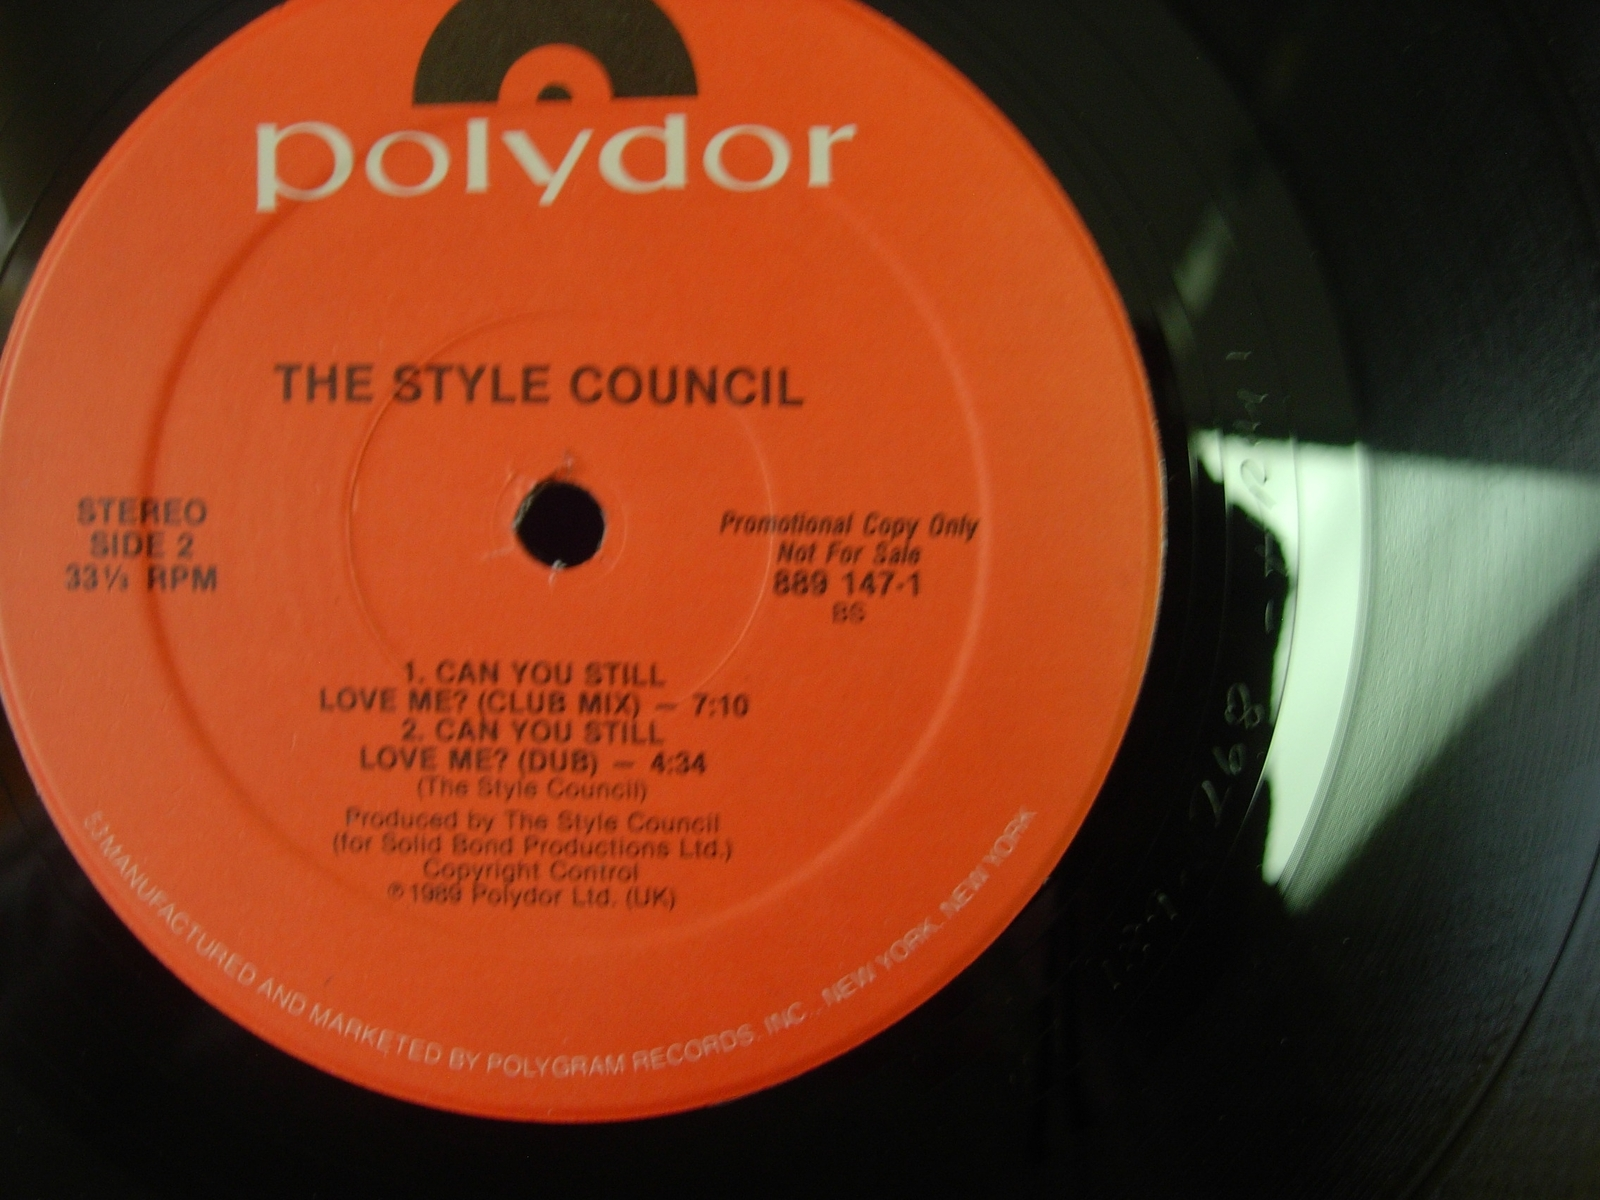 """The Style Council - Promised Land - Polydor 889 147-1 - PROMO - 12"""" single"""